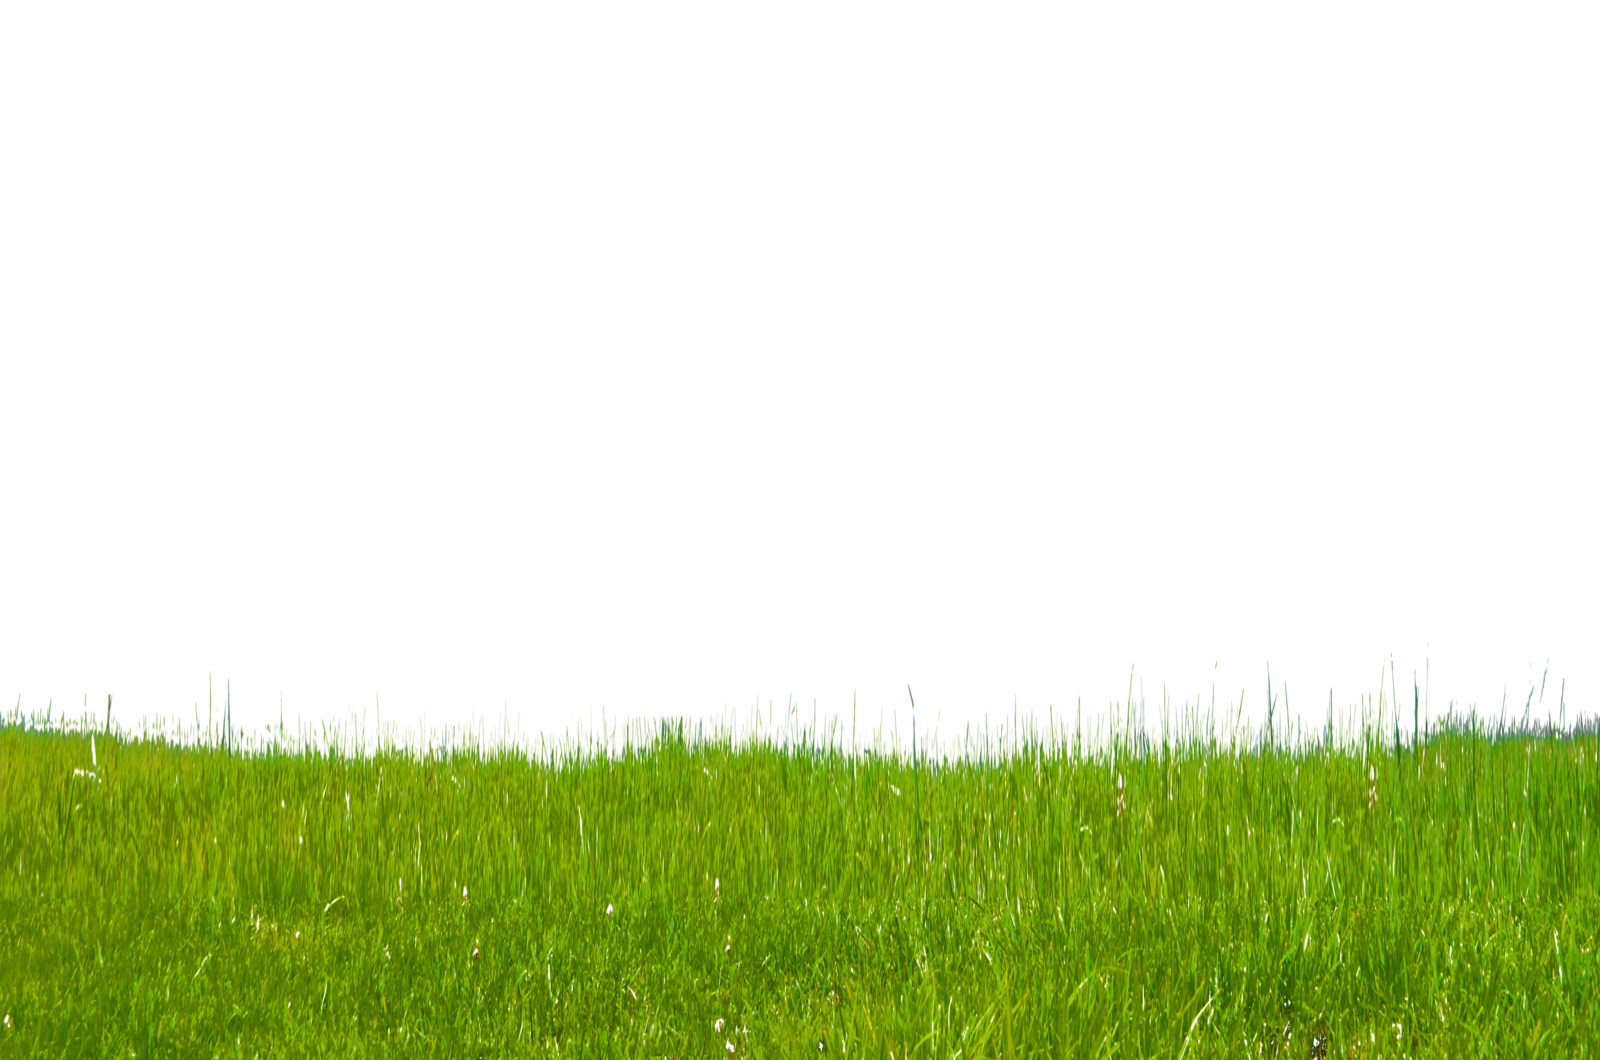 Pathway clipart hillside. Grass on stock photo